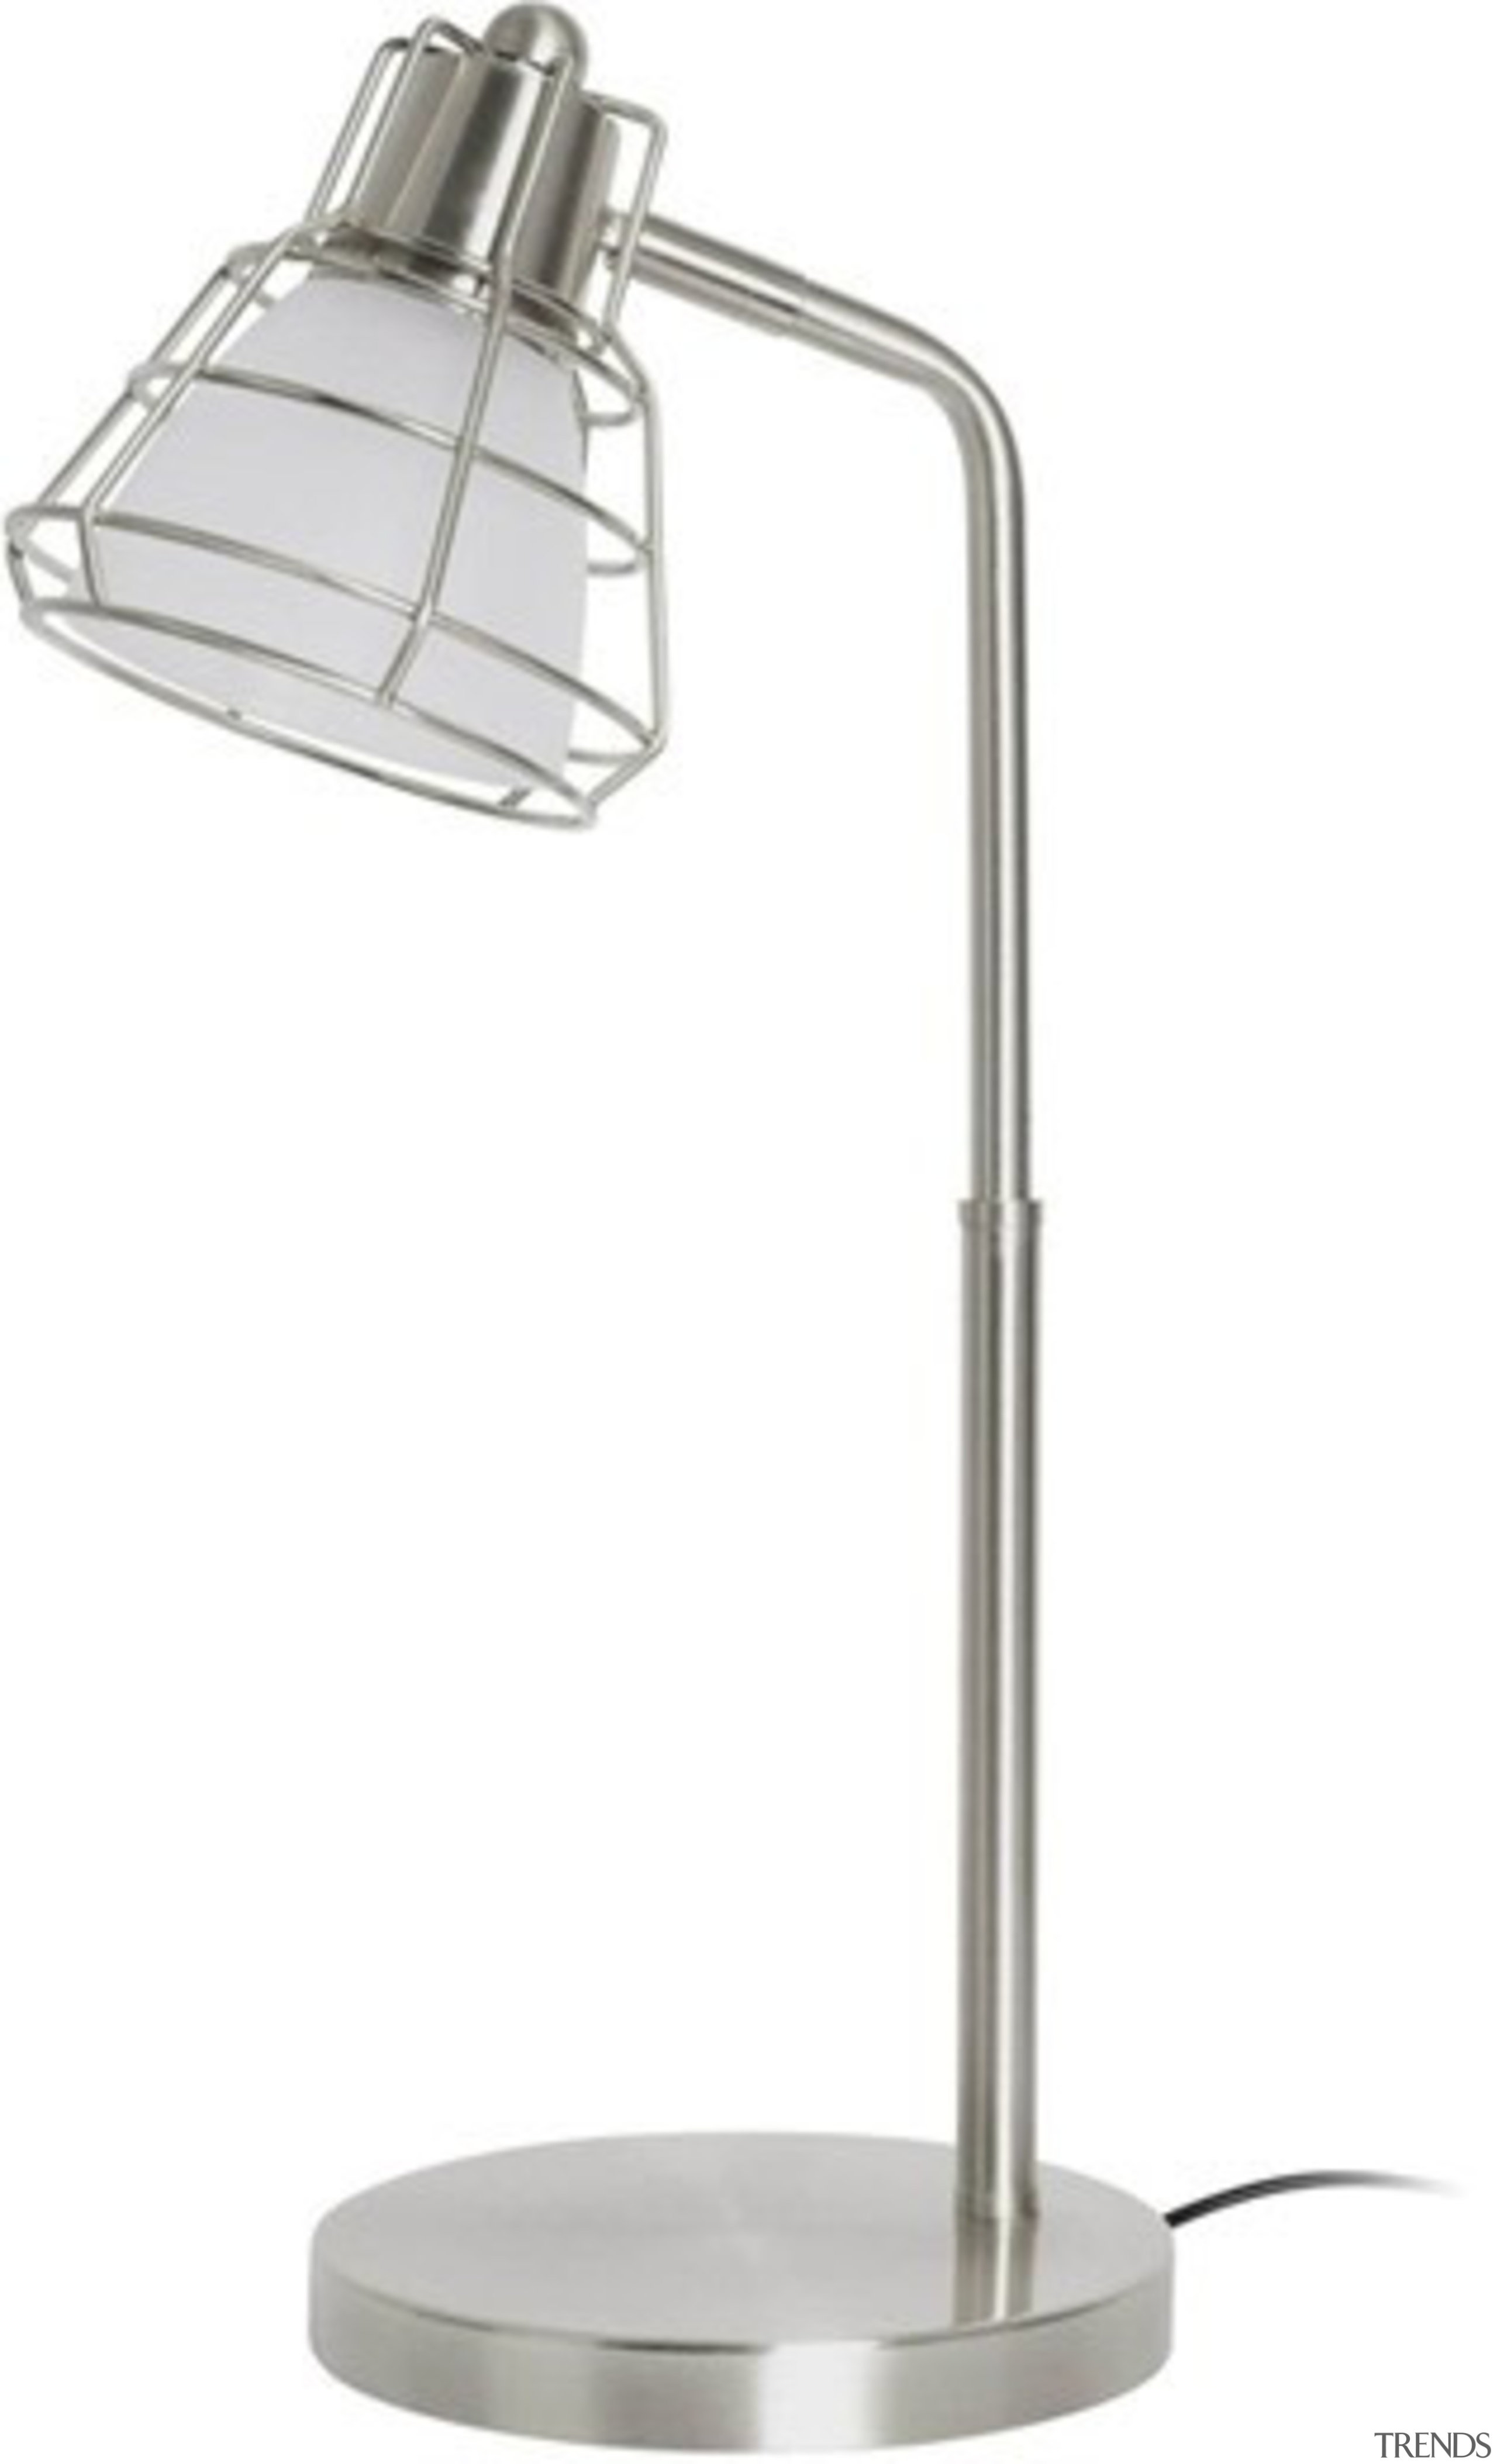 FeaturesThe Lado is a modern desk lamp design light fixture, lighting, product design, white